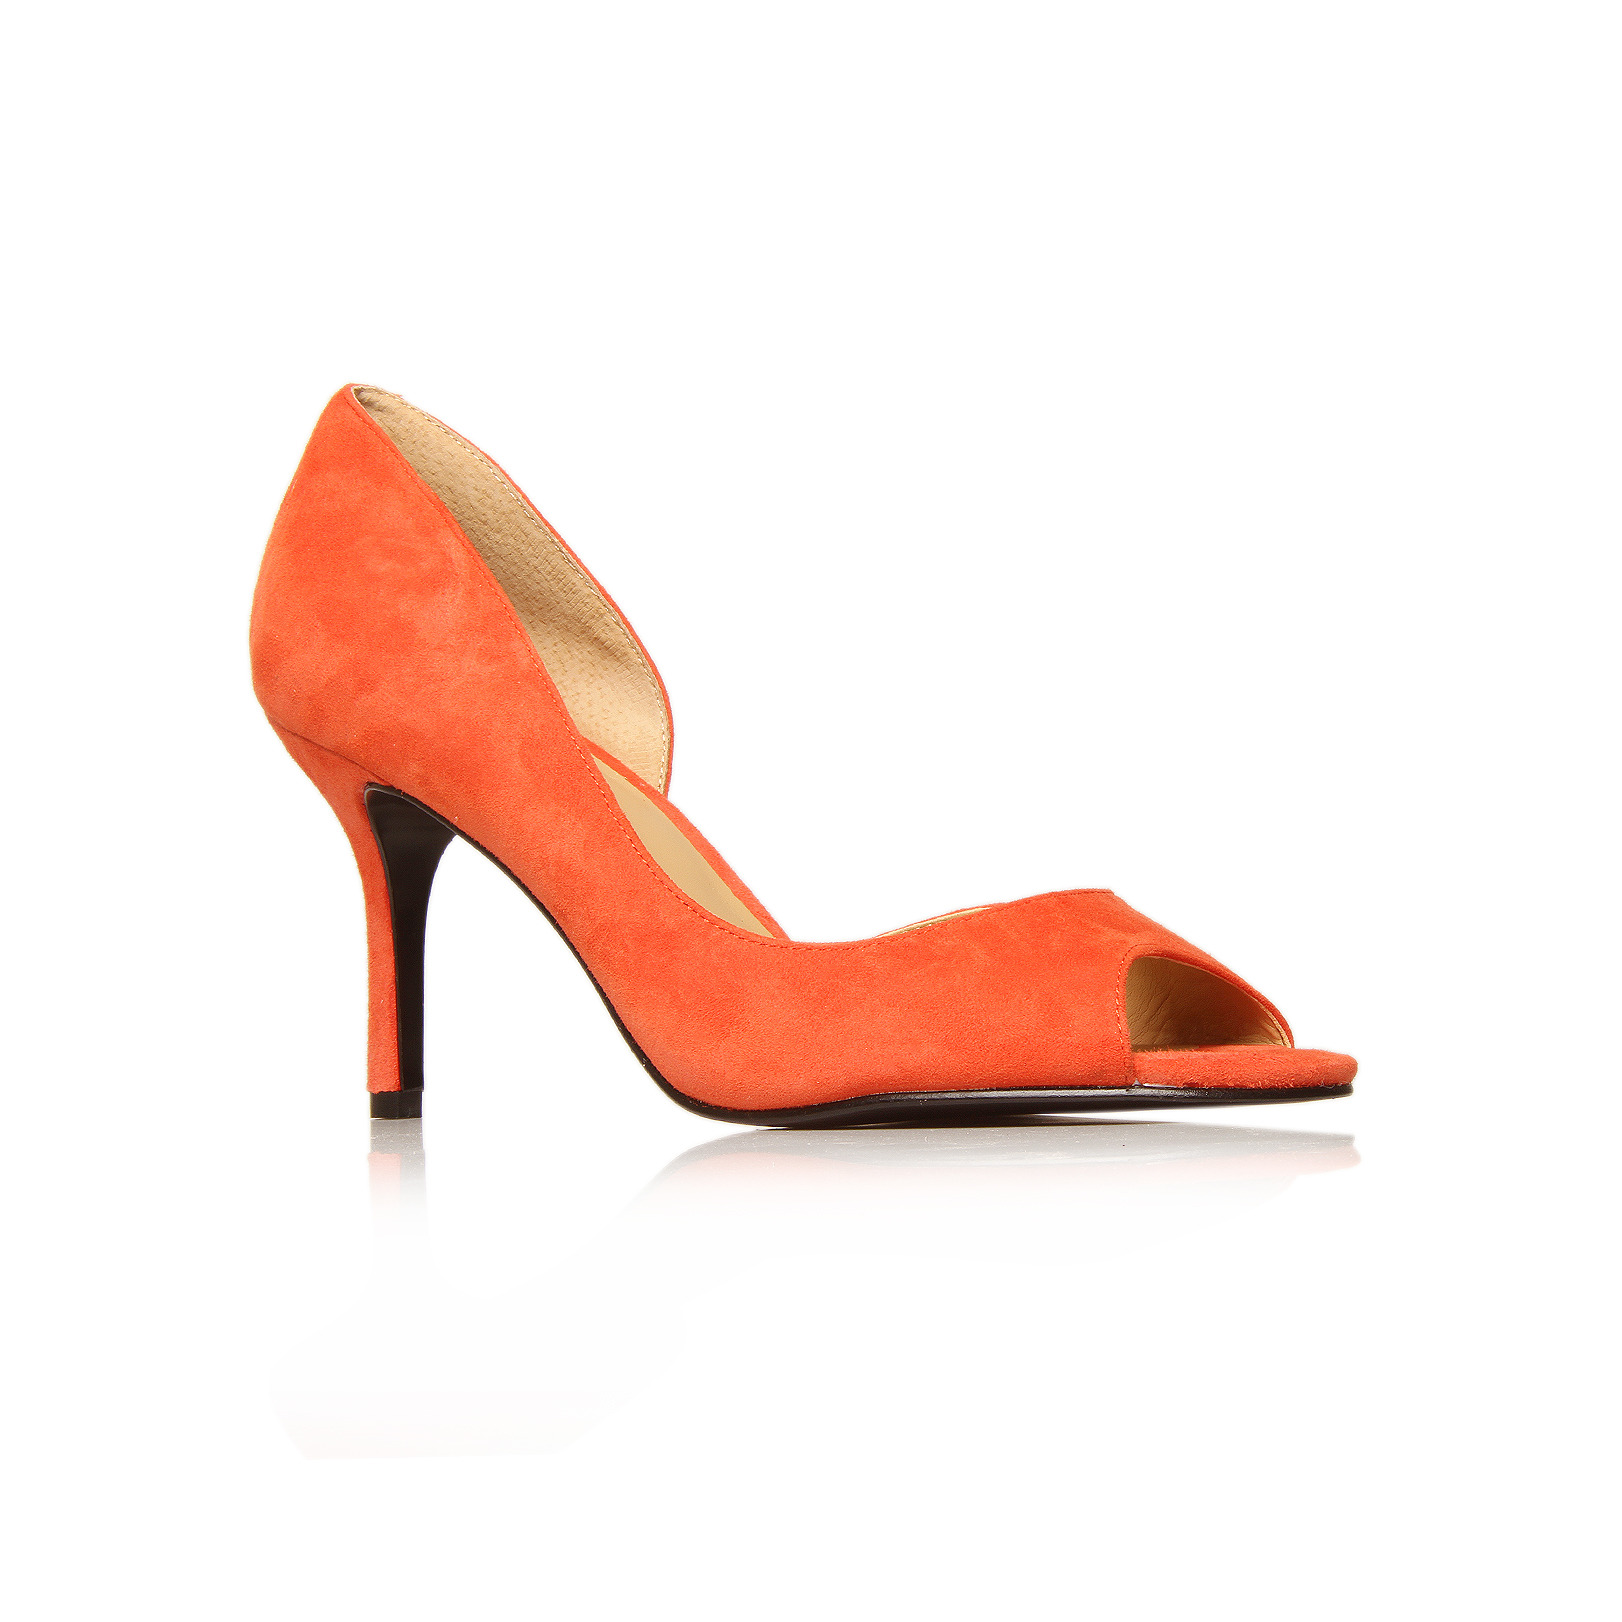 Geezup - predominant colour: bright orange; material: faux leather; heel height: high; heel: stiletto; toe: open toe/peeptoe; style: courts